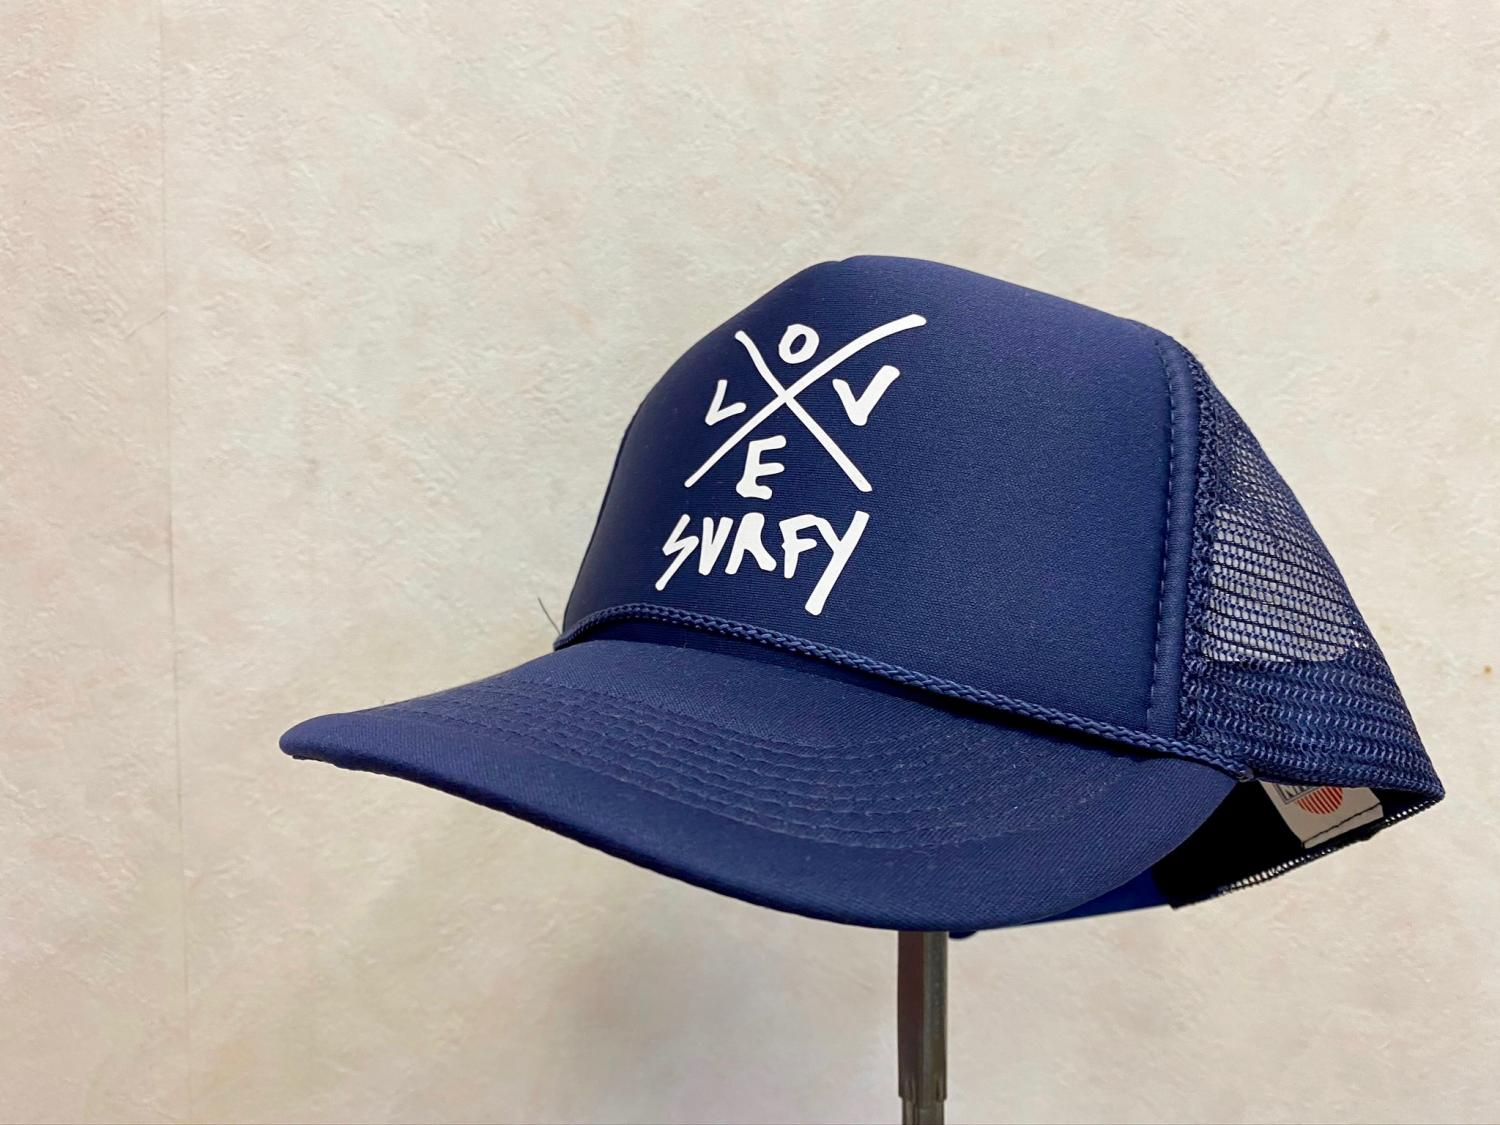 LOVE Surfy Design TRUCKER HAT